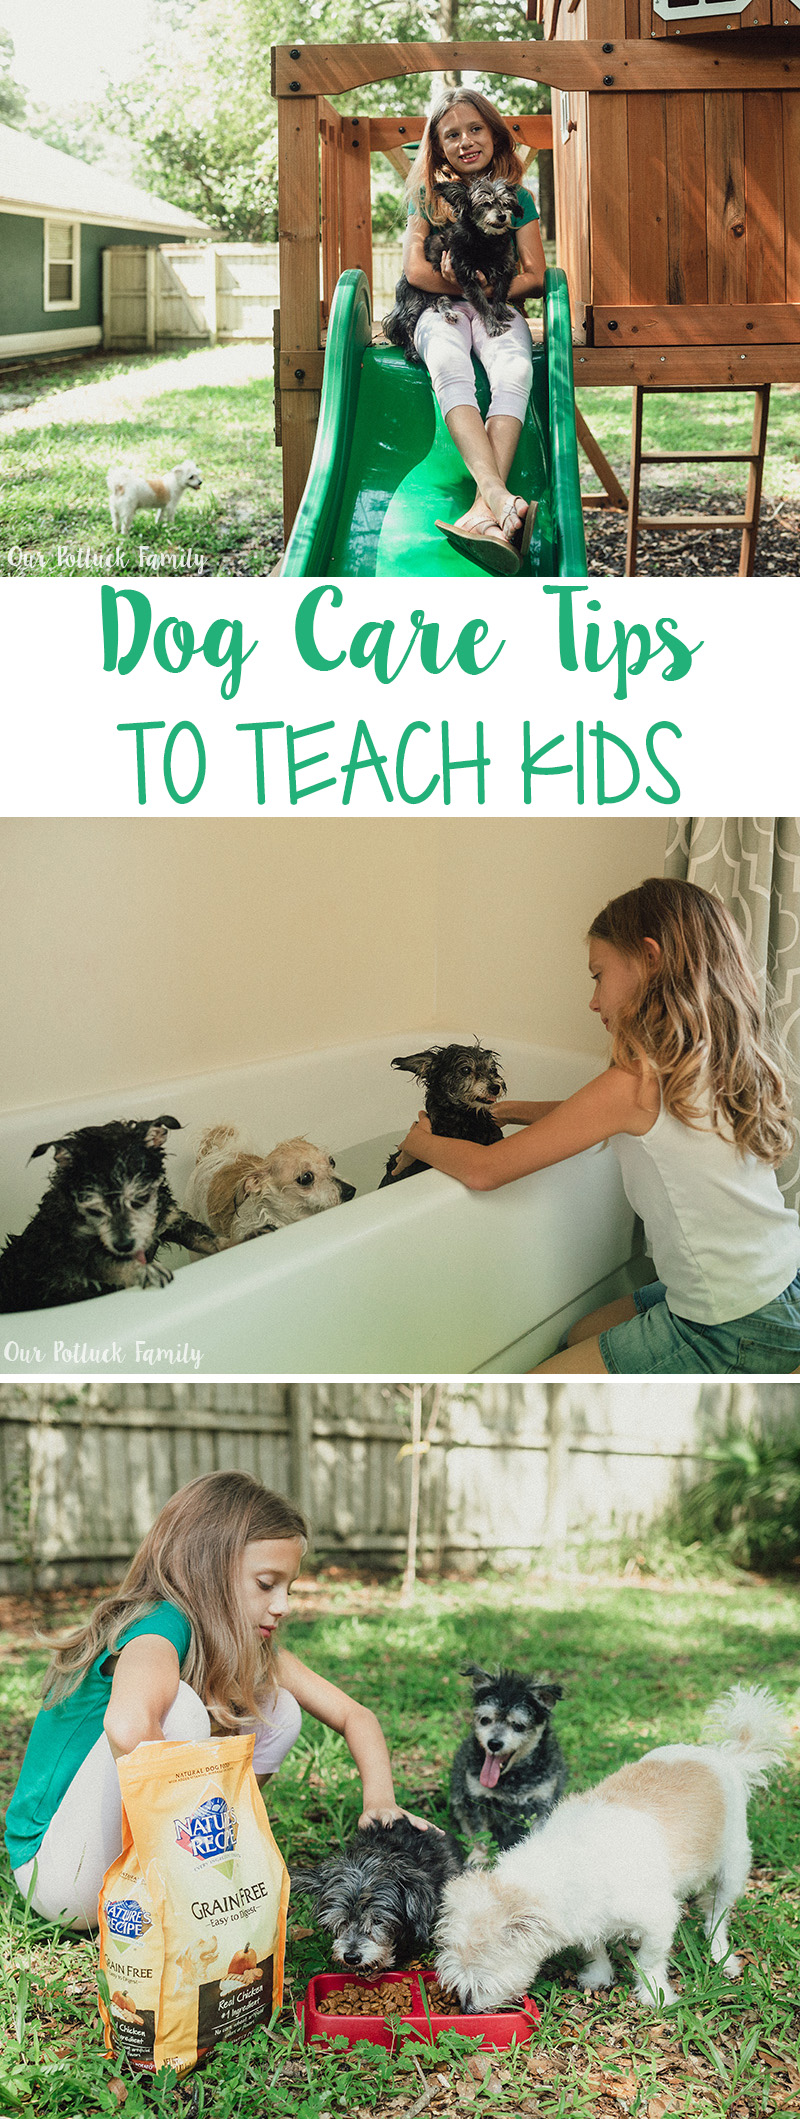 Dog Care Tips to Teach Kids